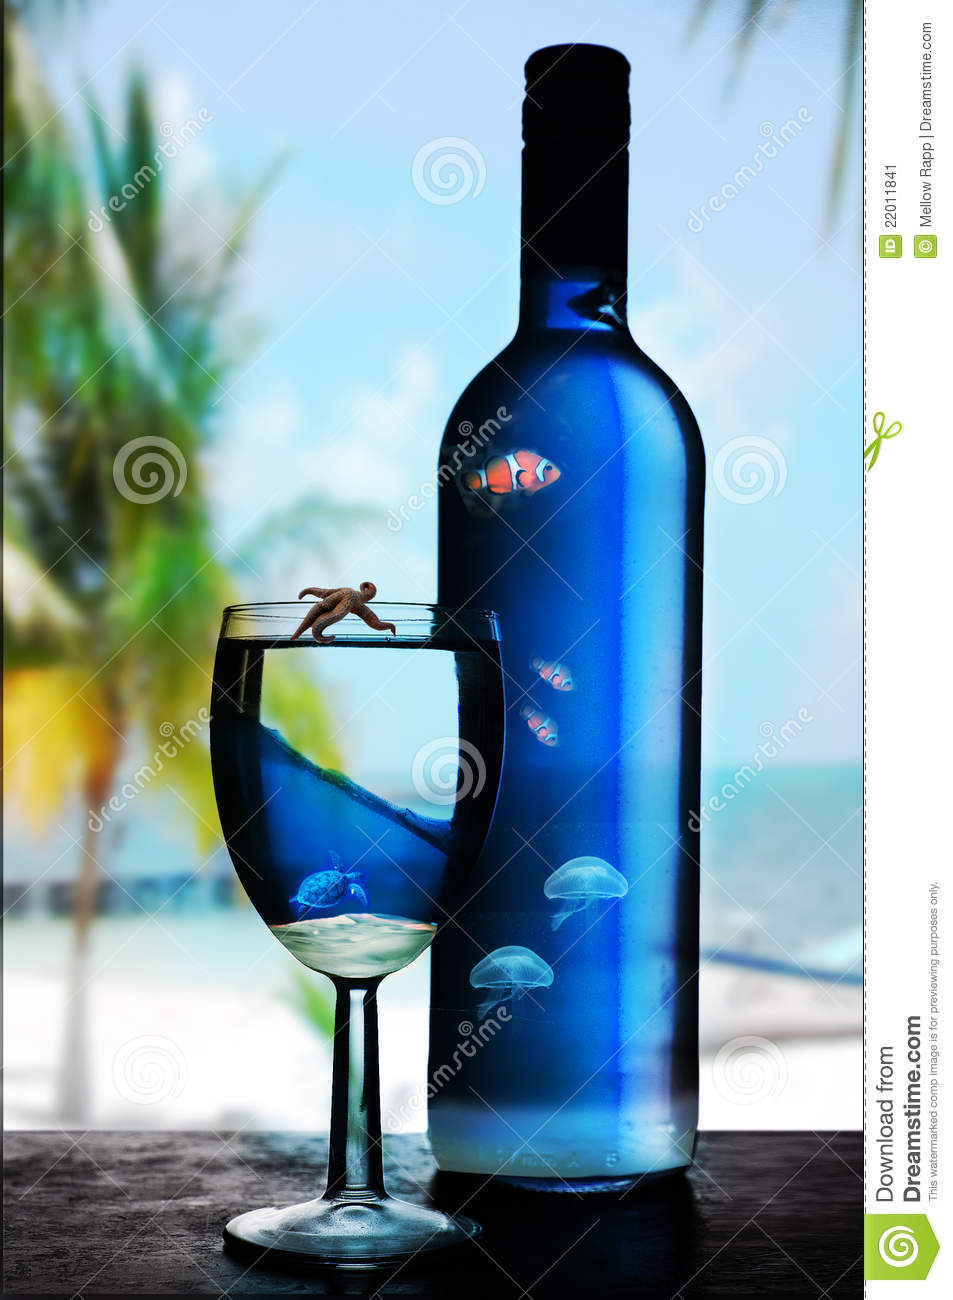 3d Animation Wallpaper Download Blue Glass And Bottle Of Wine Stock Image Image 22011841